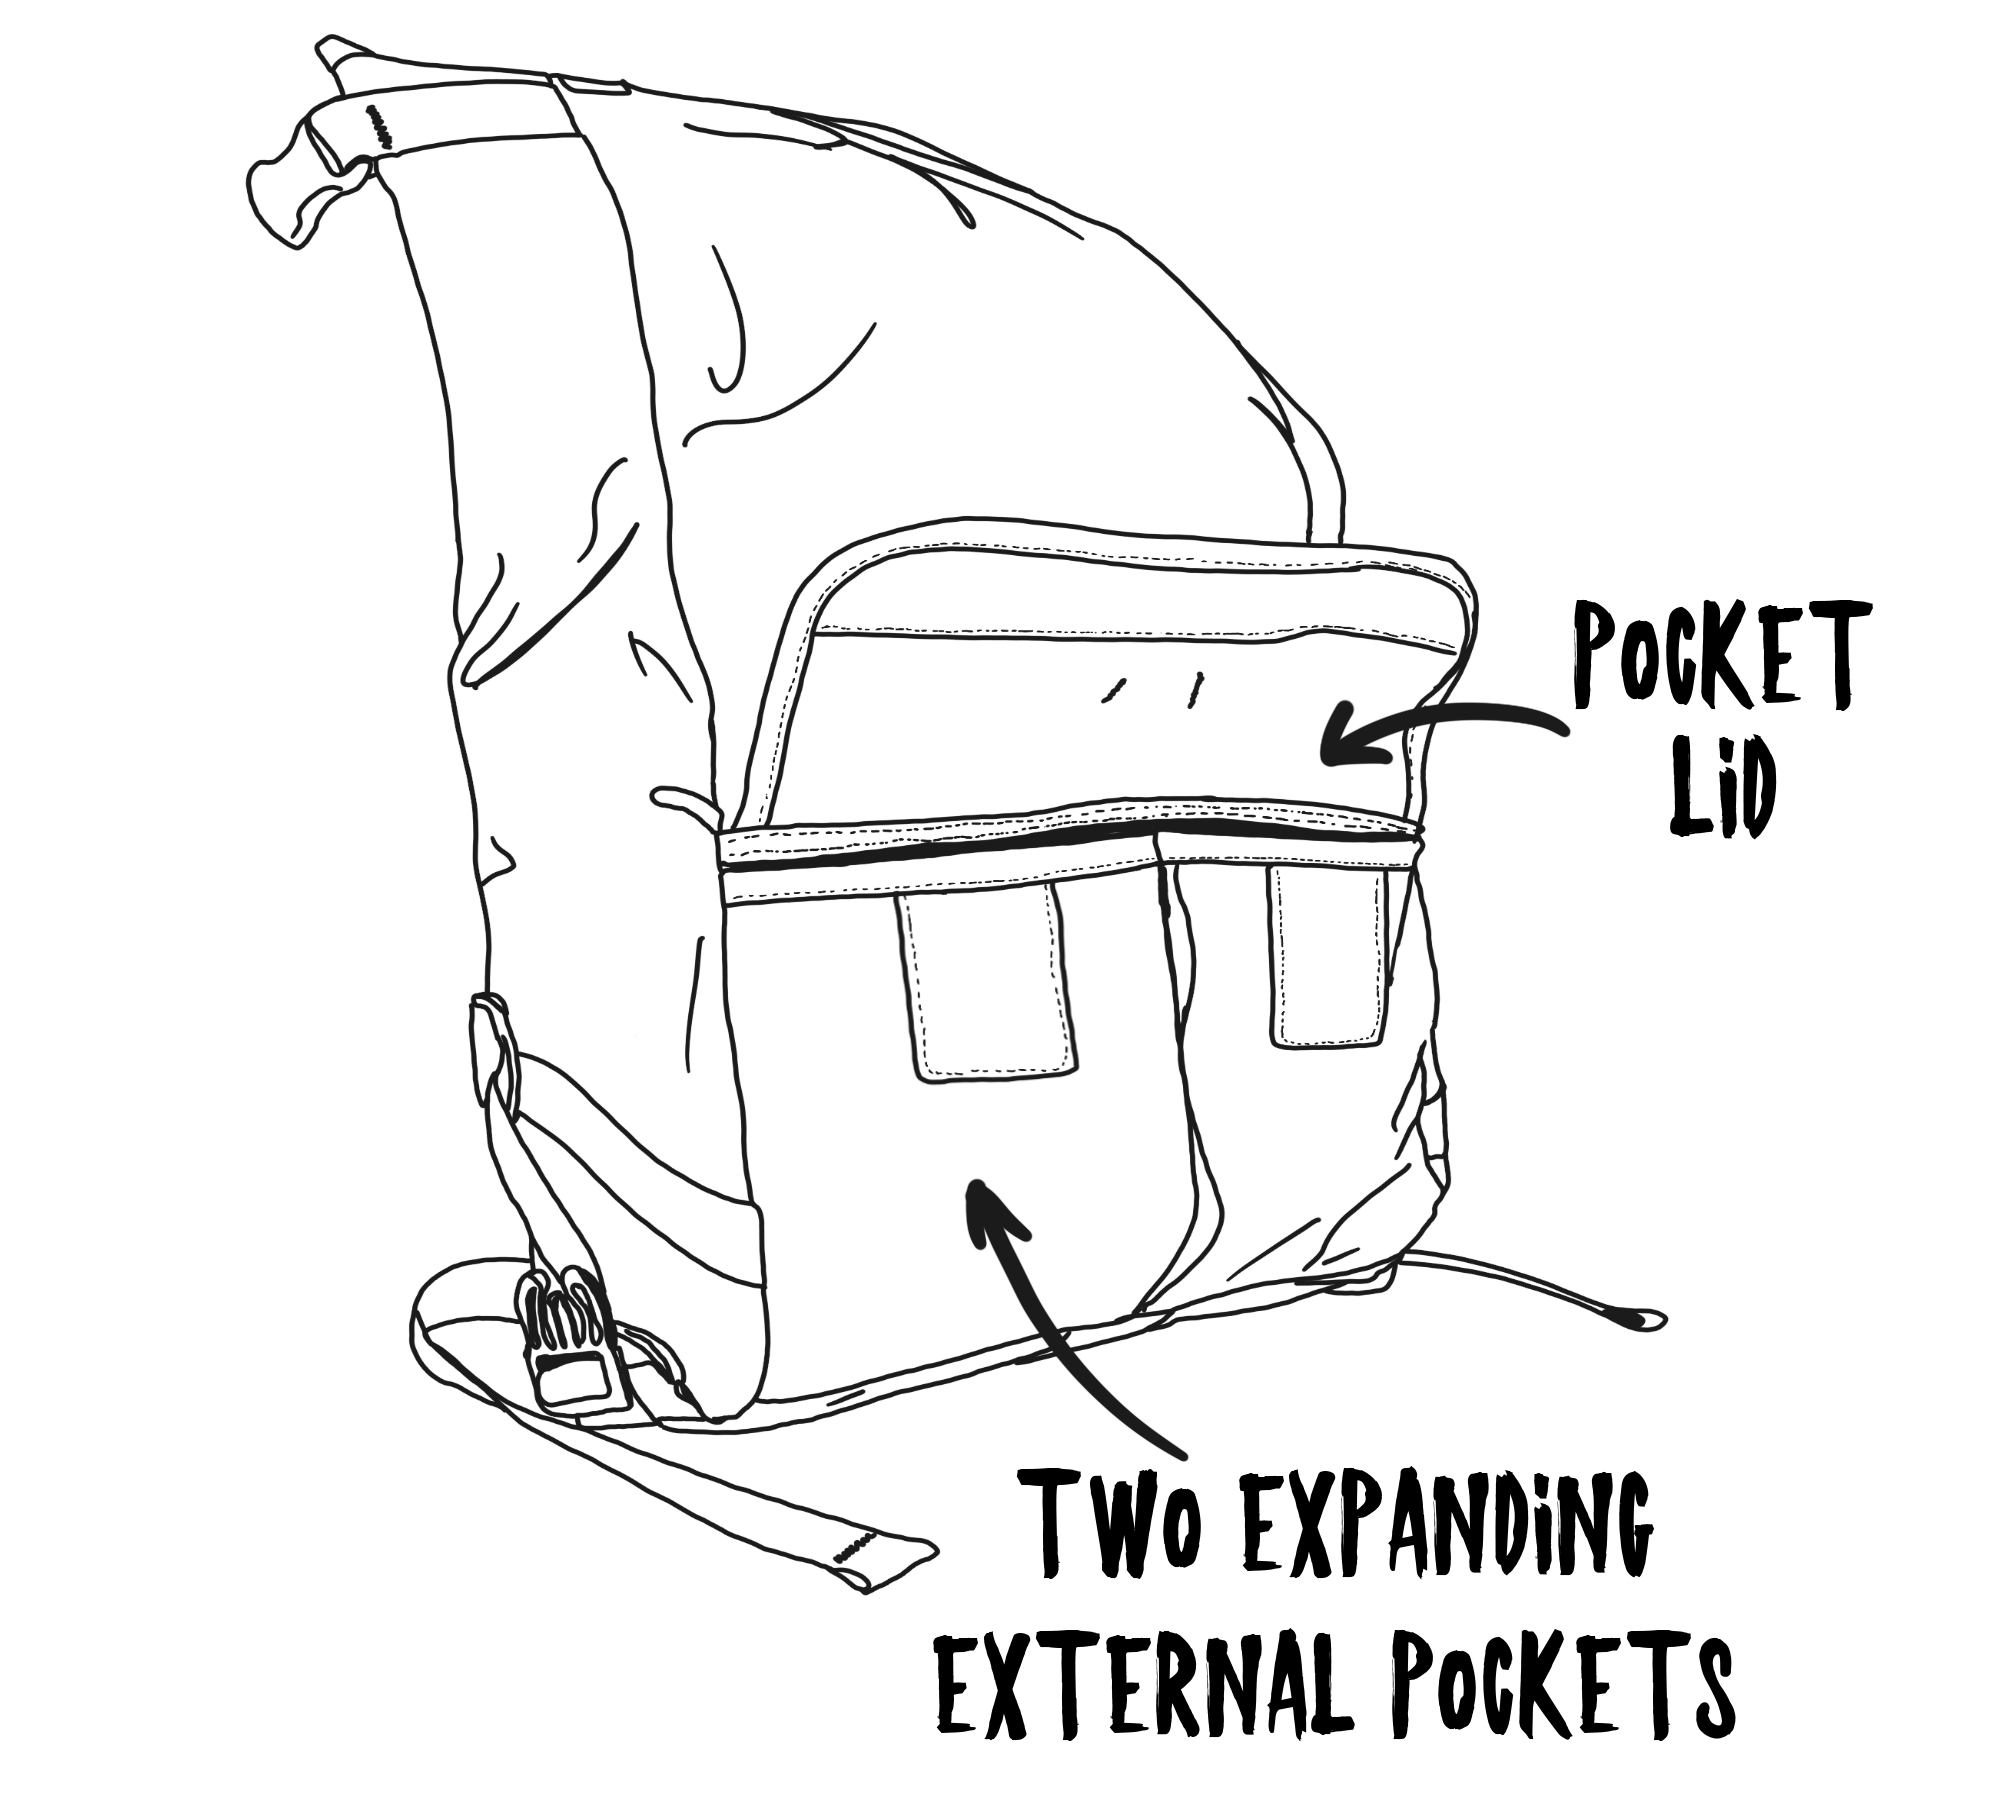 Jammer Bag Informational Sketch Front Pockets Expanded